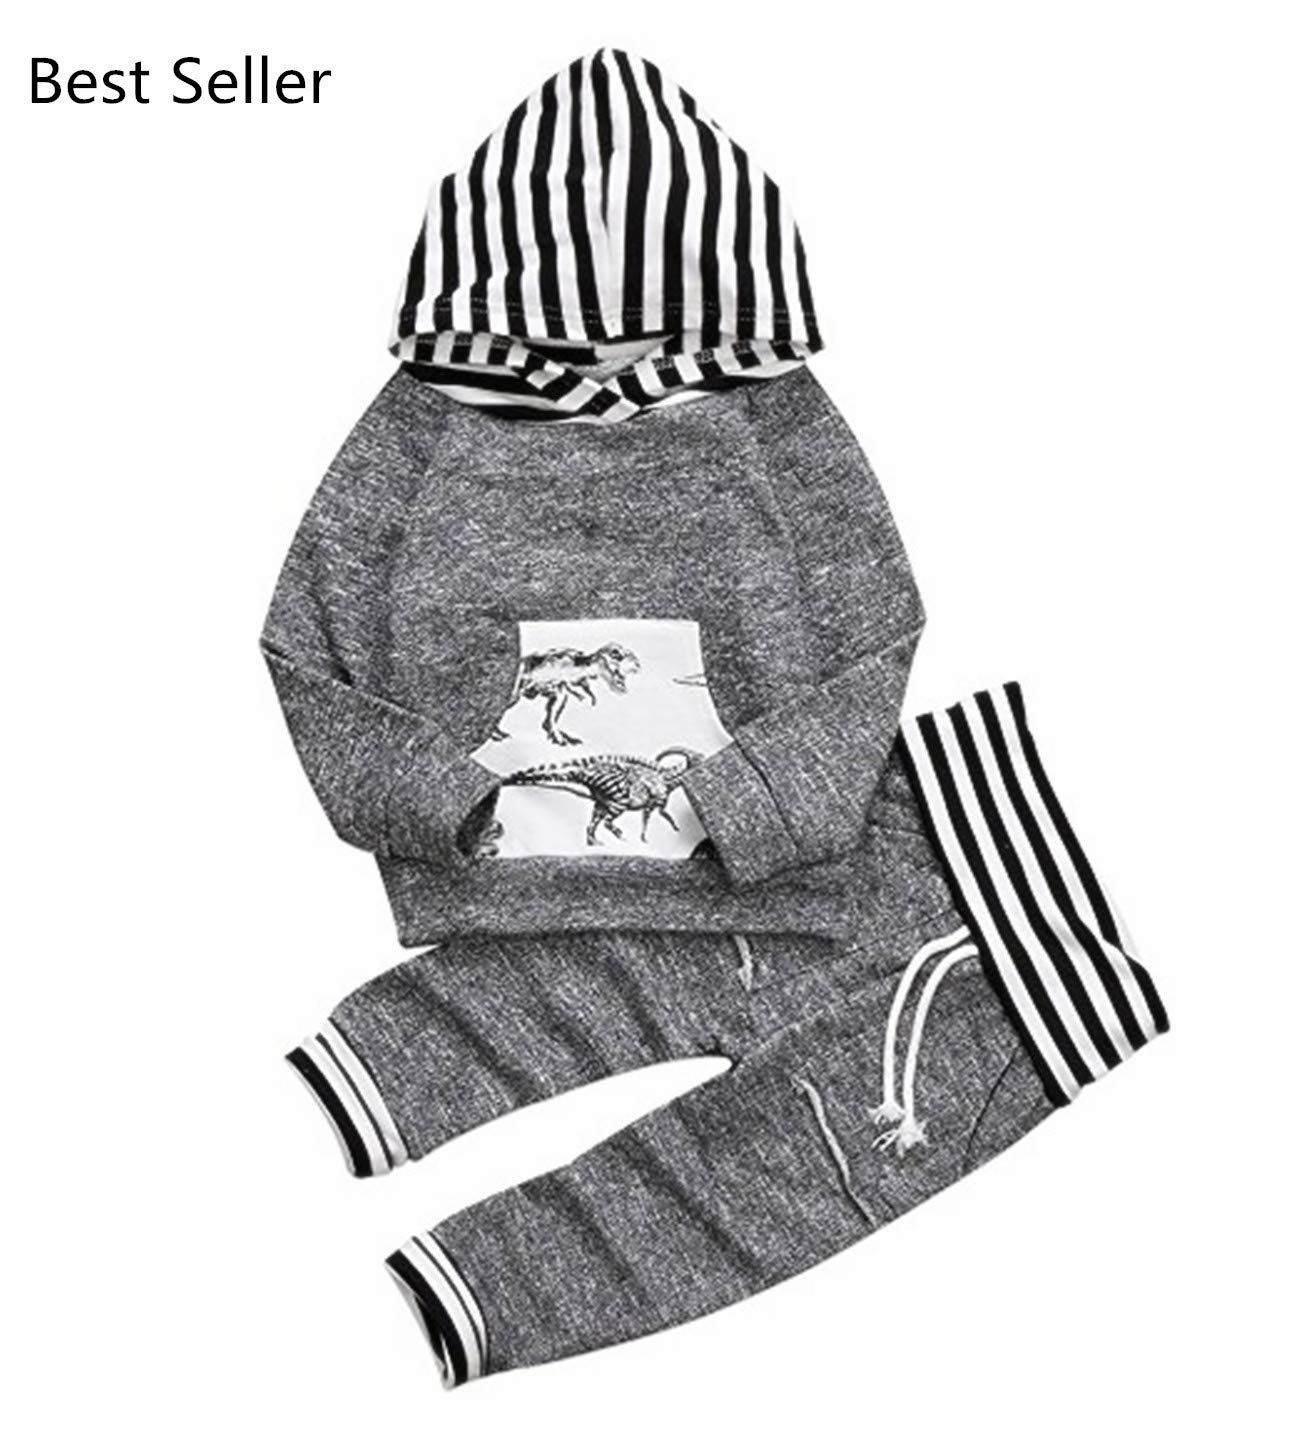 CPEI Toddler Infant Baby Boys Dinosaur Long Sleeve Hoodie Tops Sweatsuit Pants Outfit Set (18-24 Months, Grey)